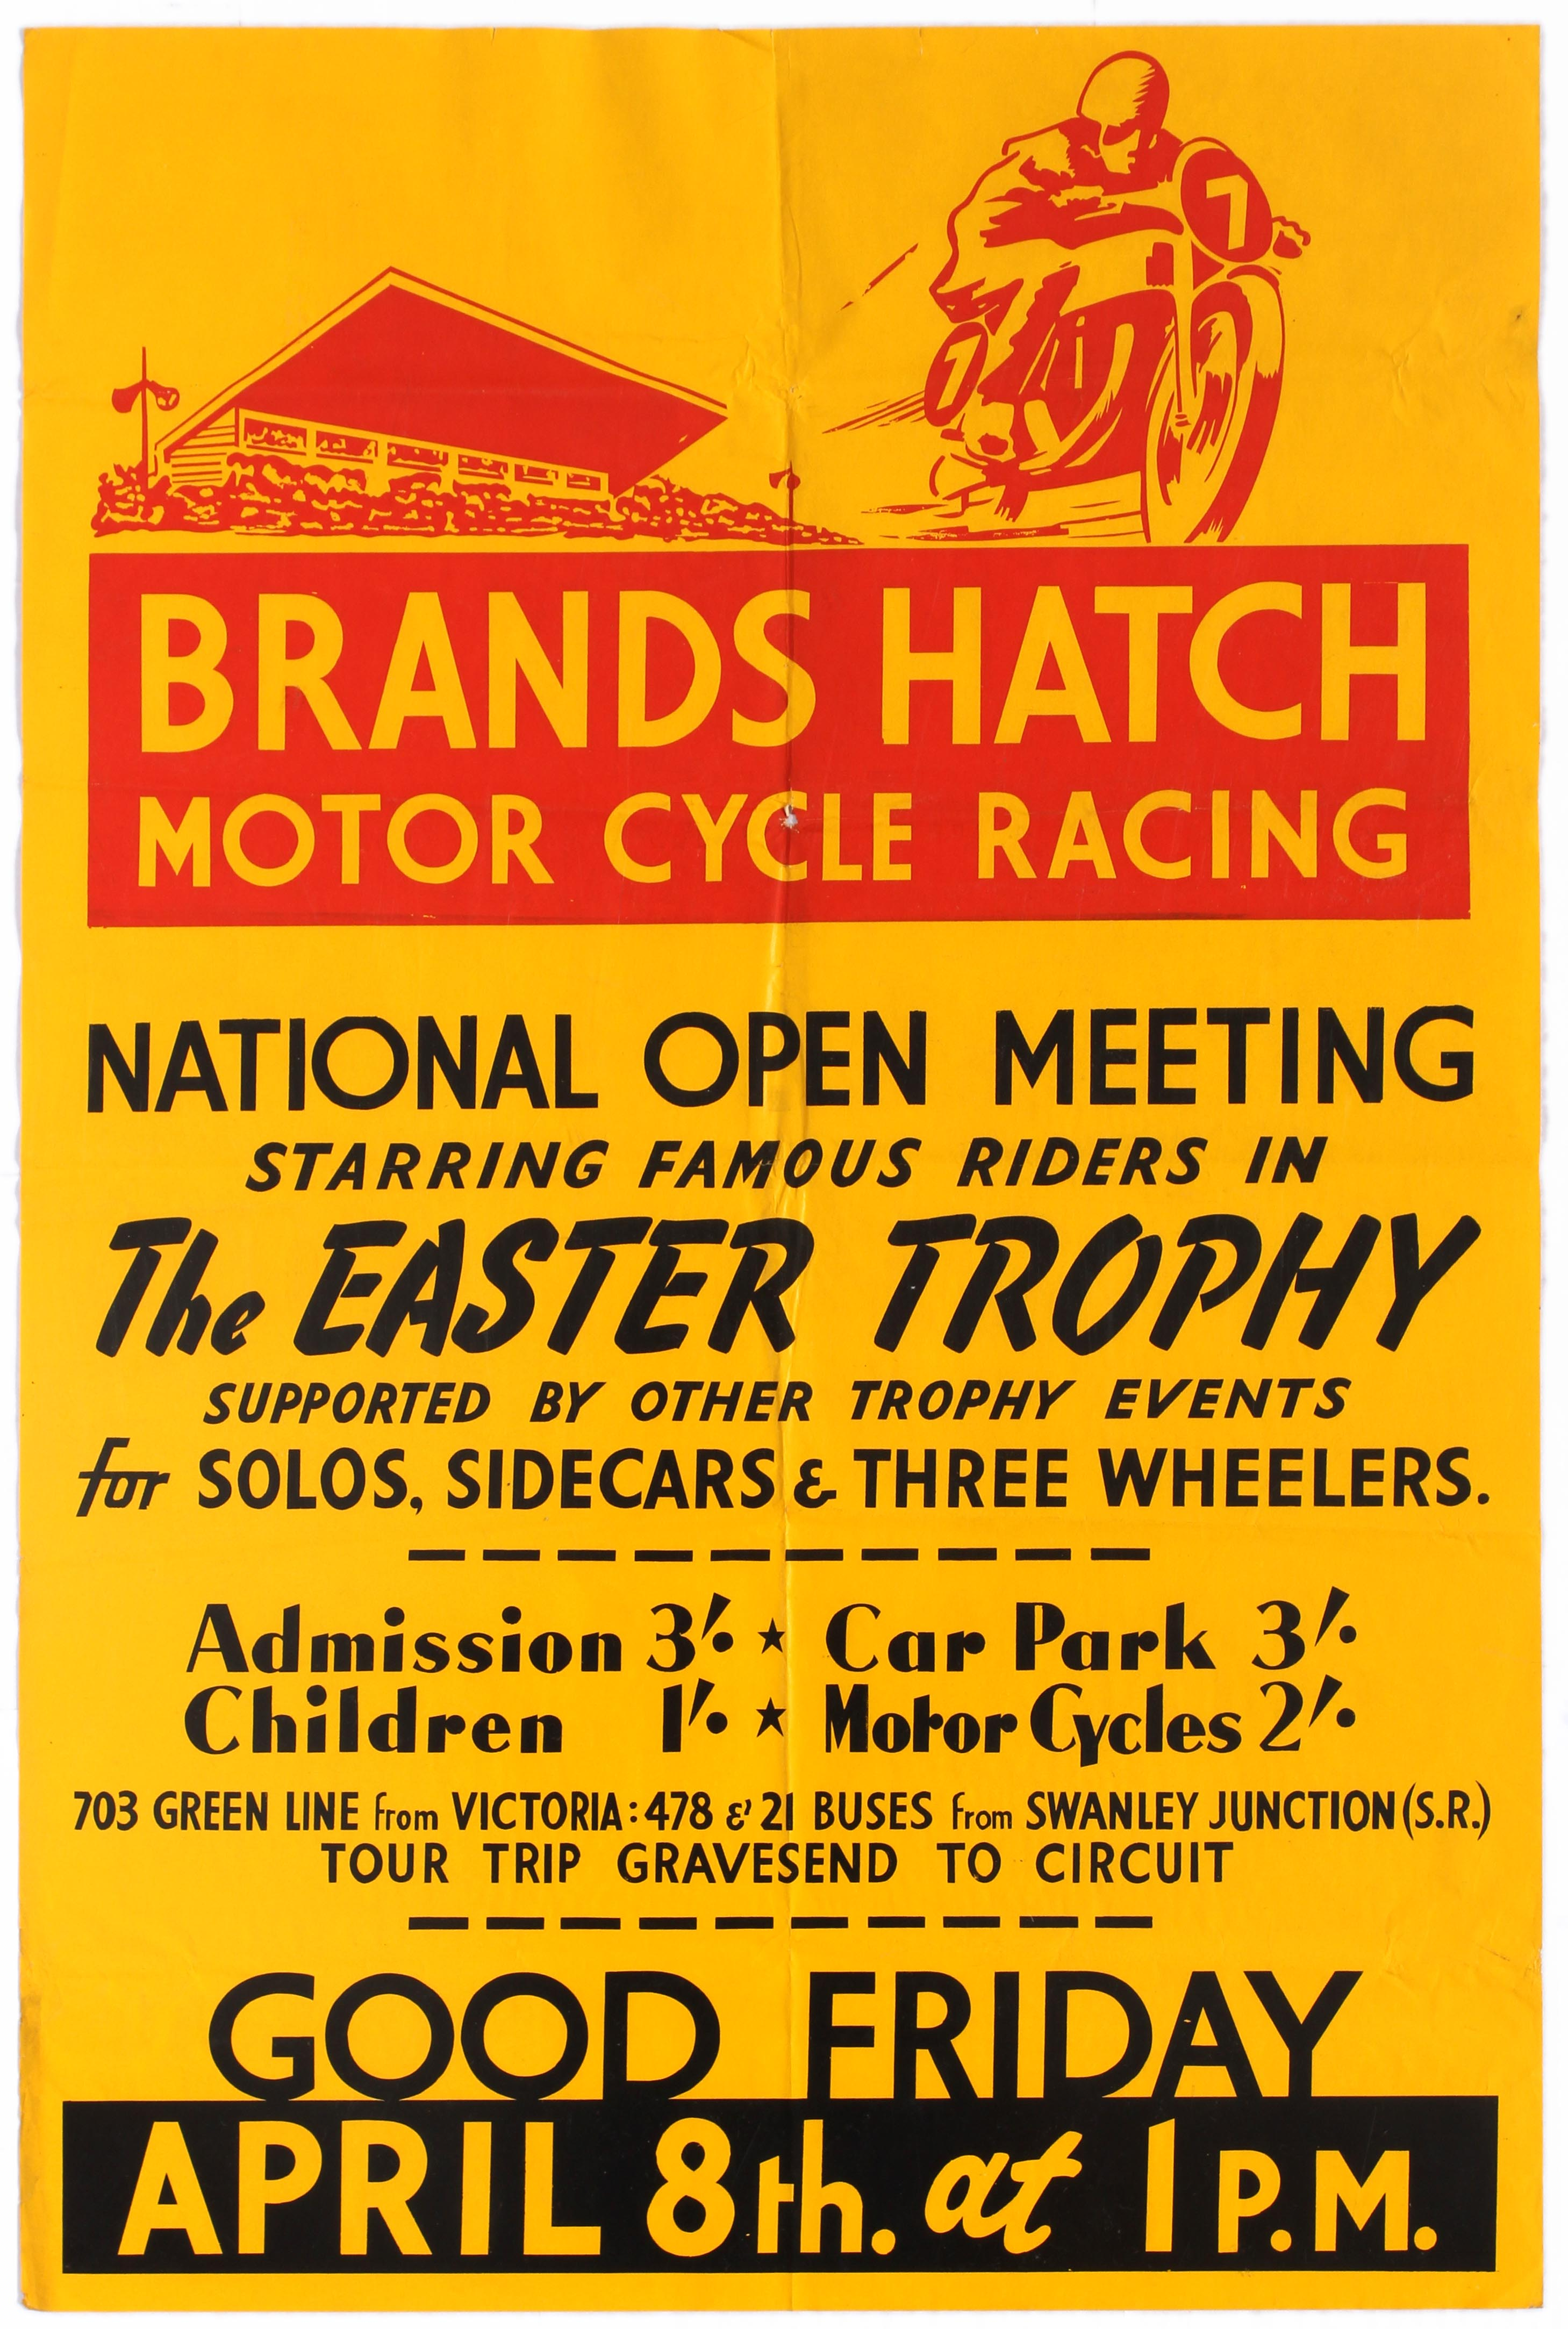 Sport Poster Brands Hatch Motorcycle Road Racing The Easter Trophy